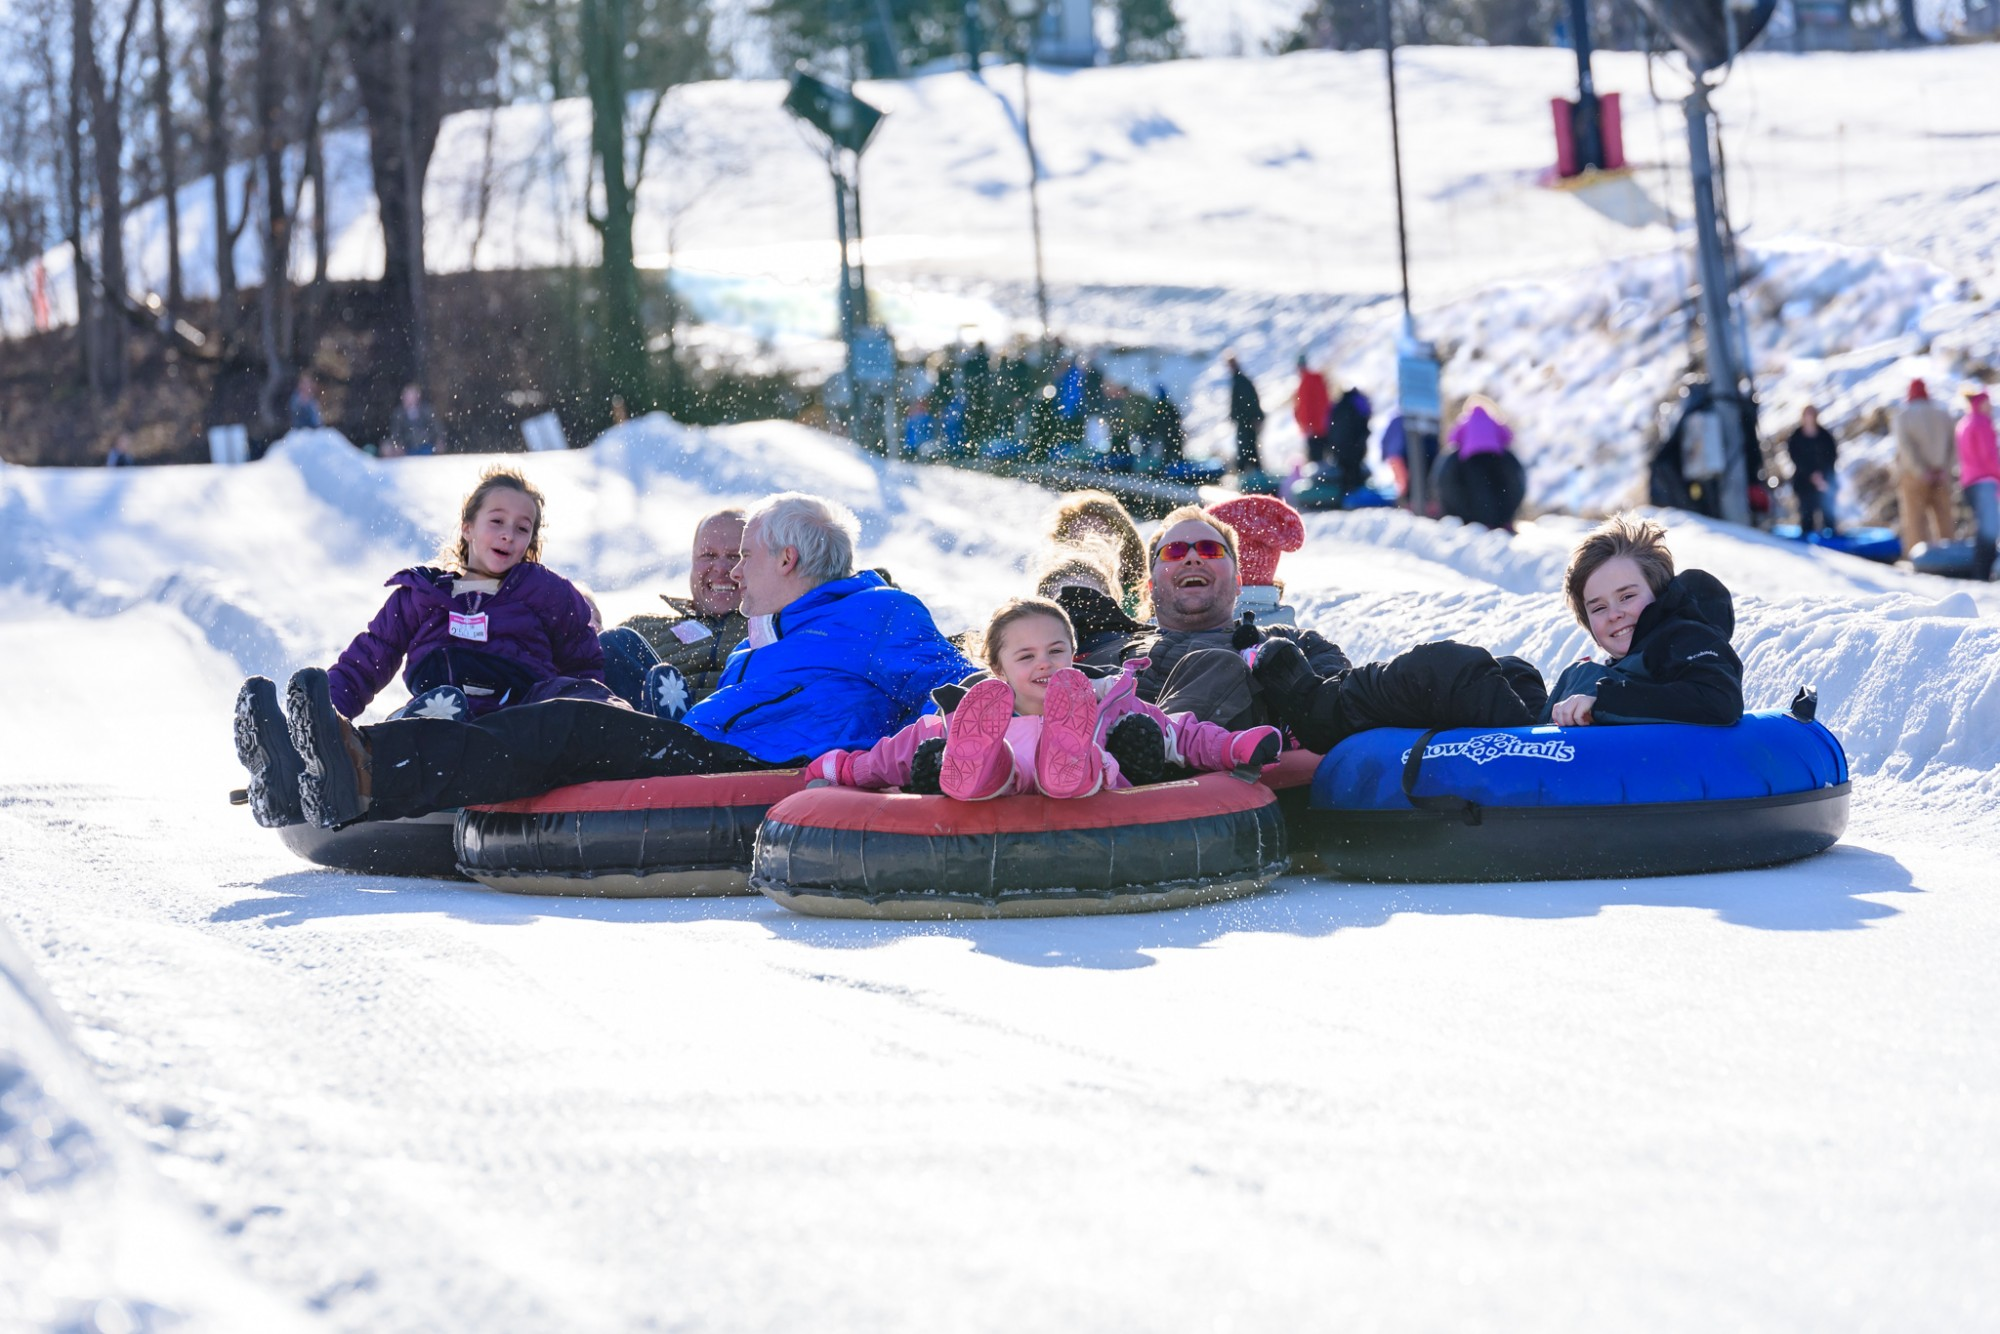 What A Fun Snow Tubing Season - Thank You!